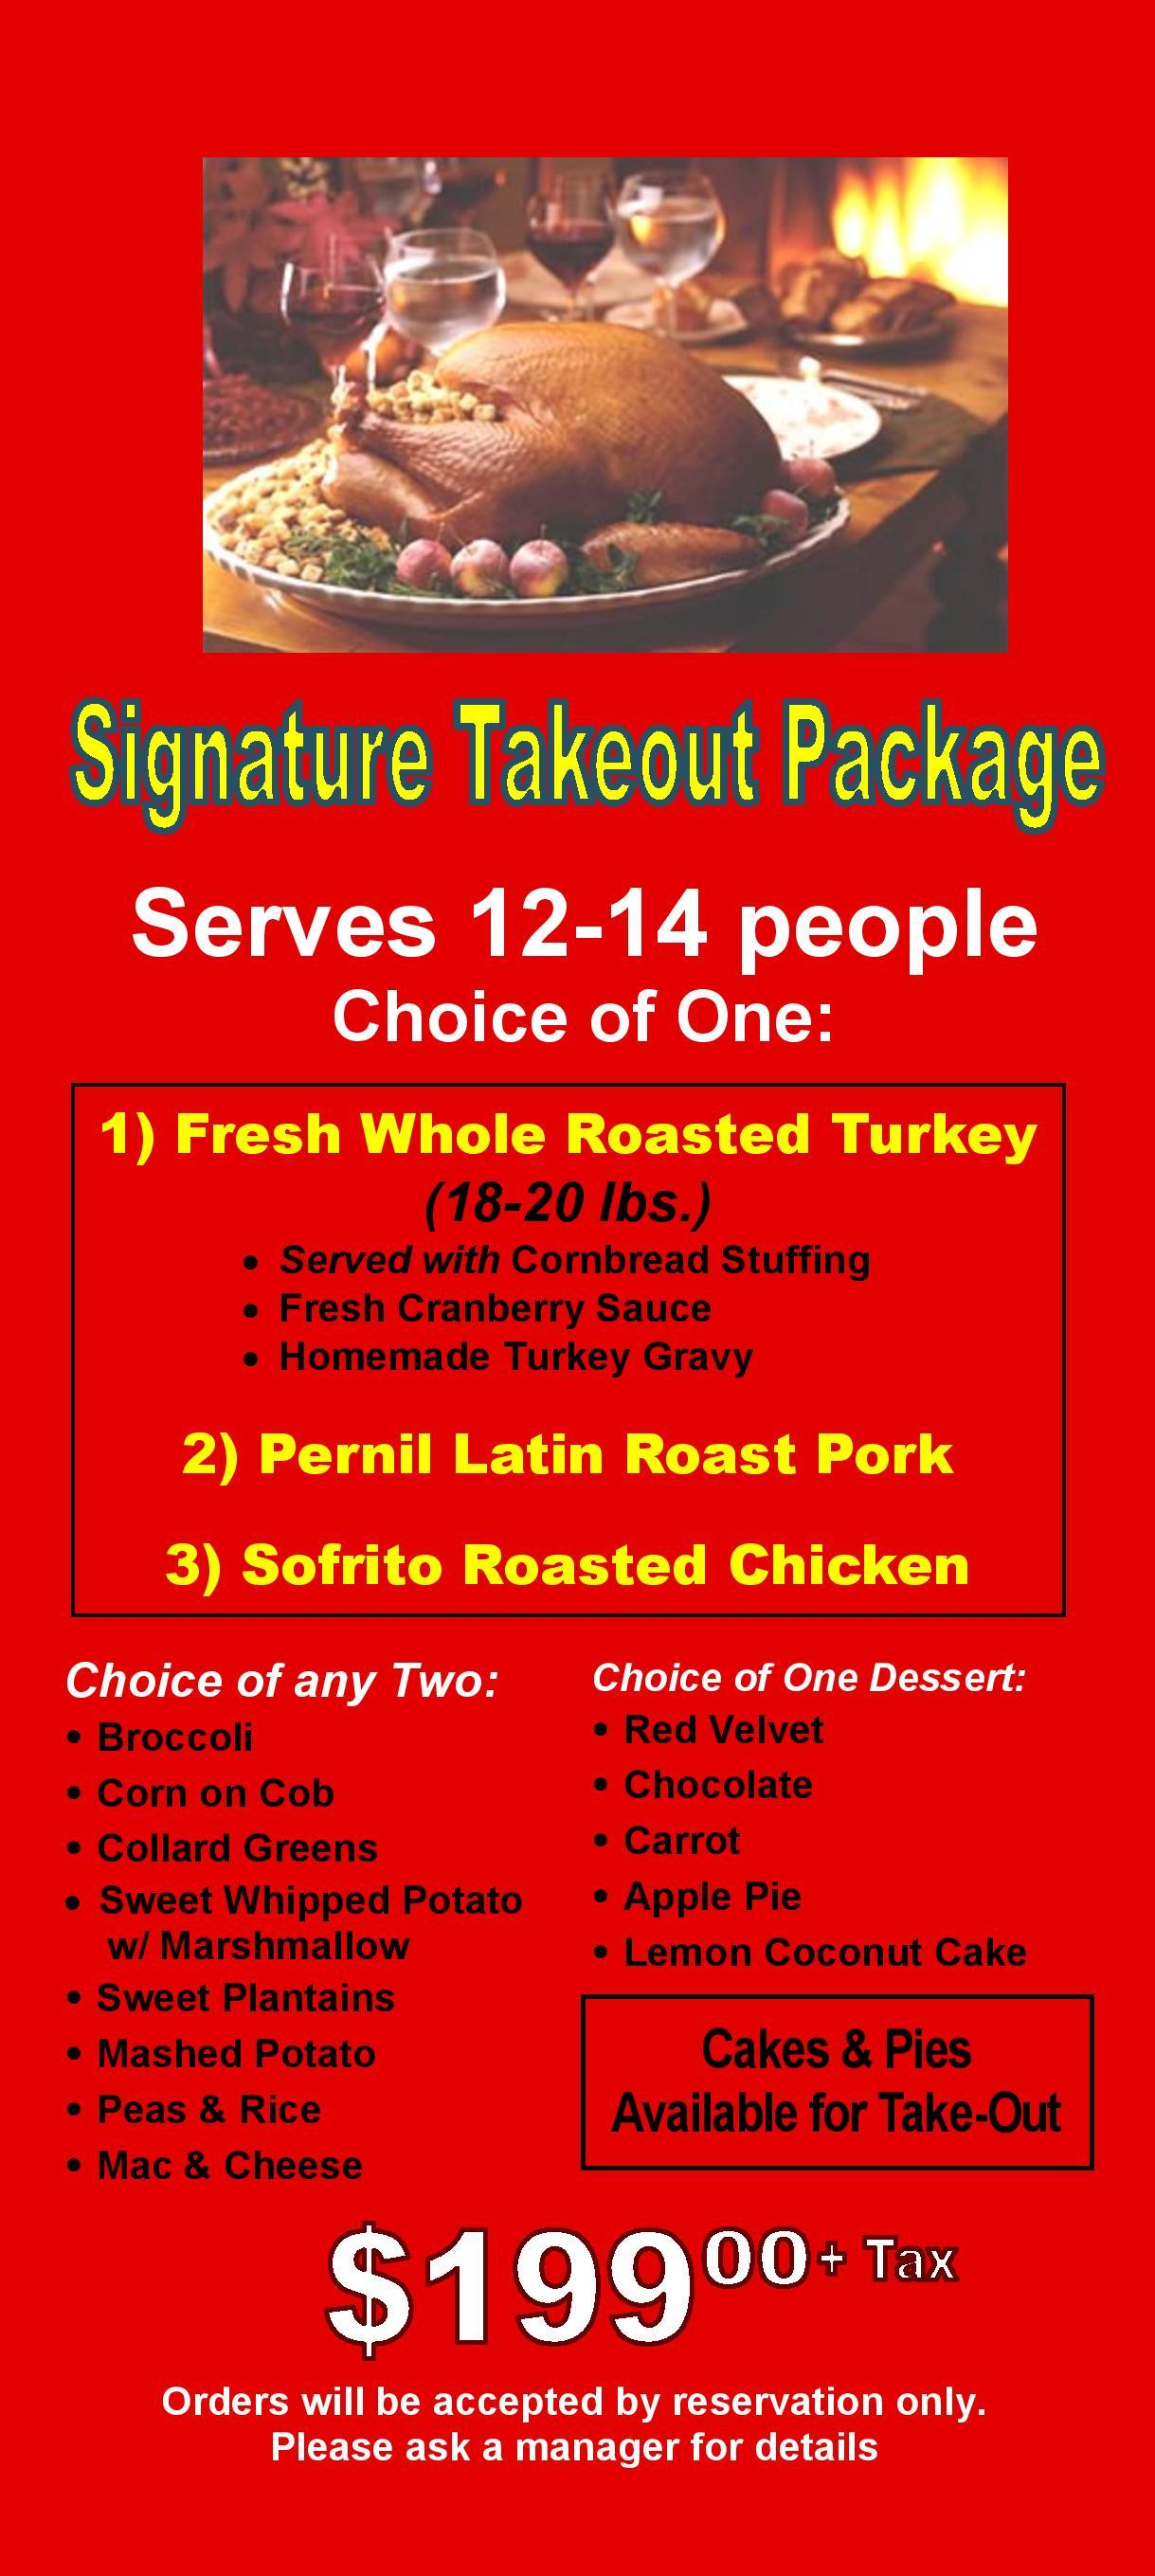 Signature Takeout Package - click for readable PDF